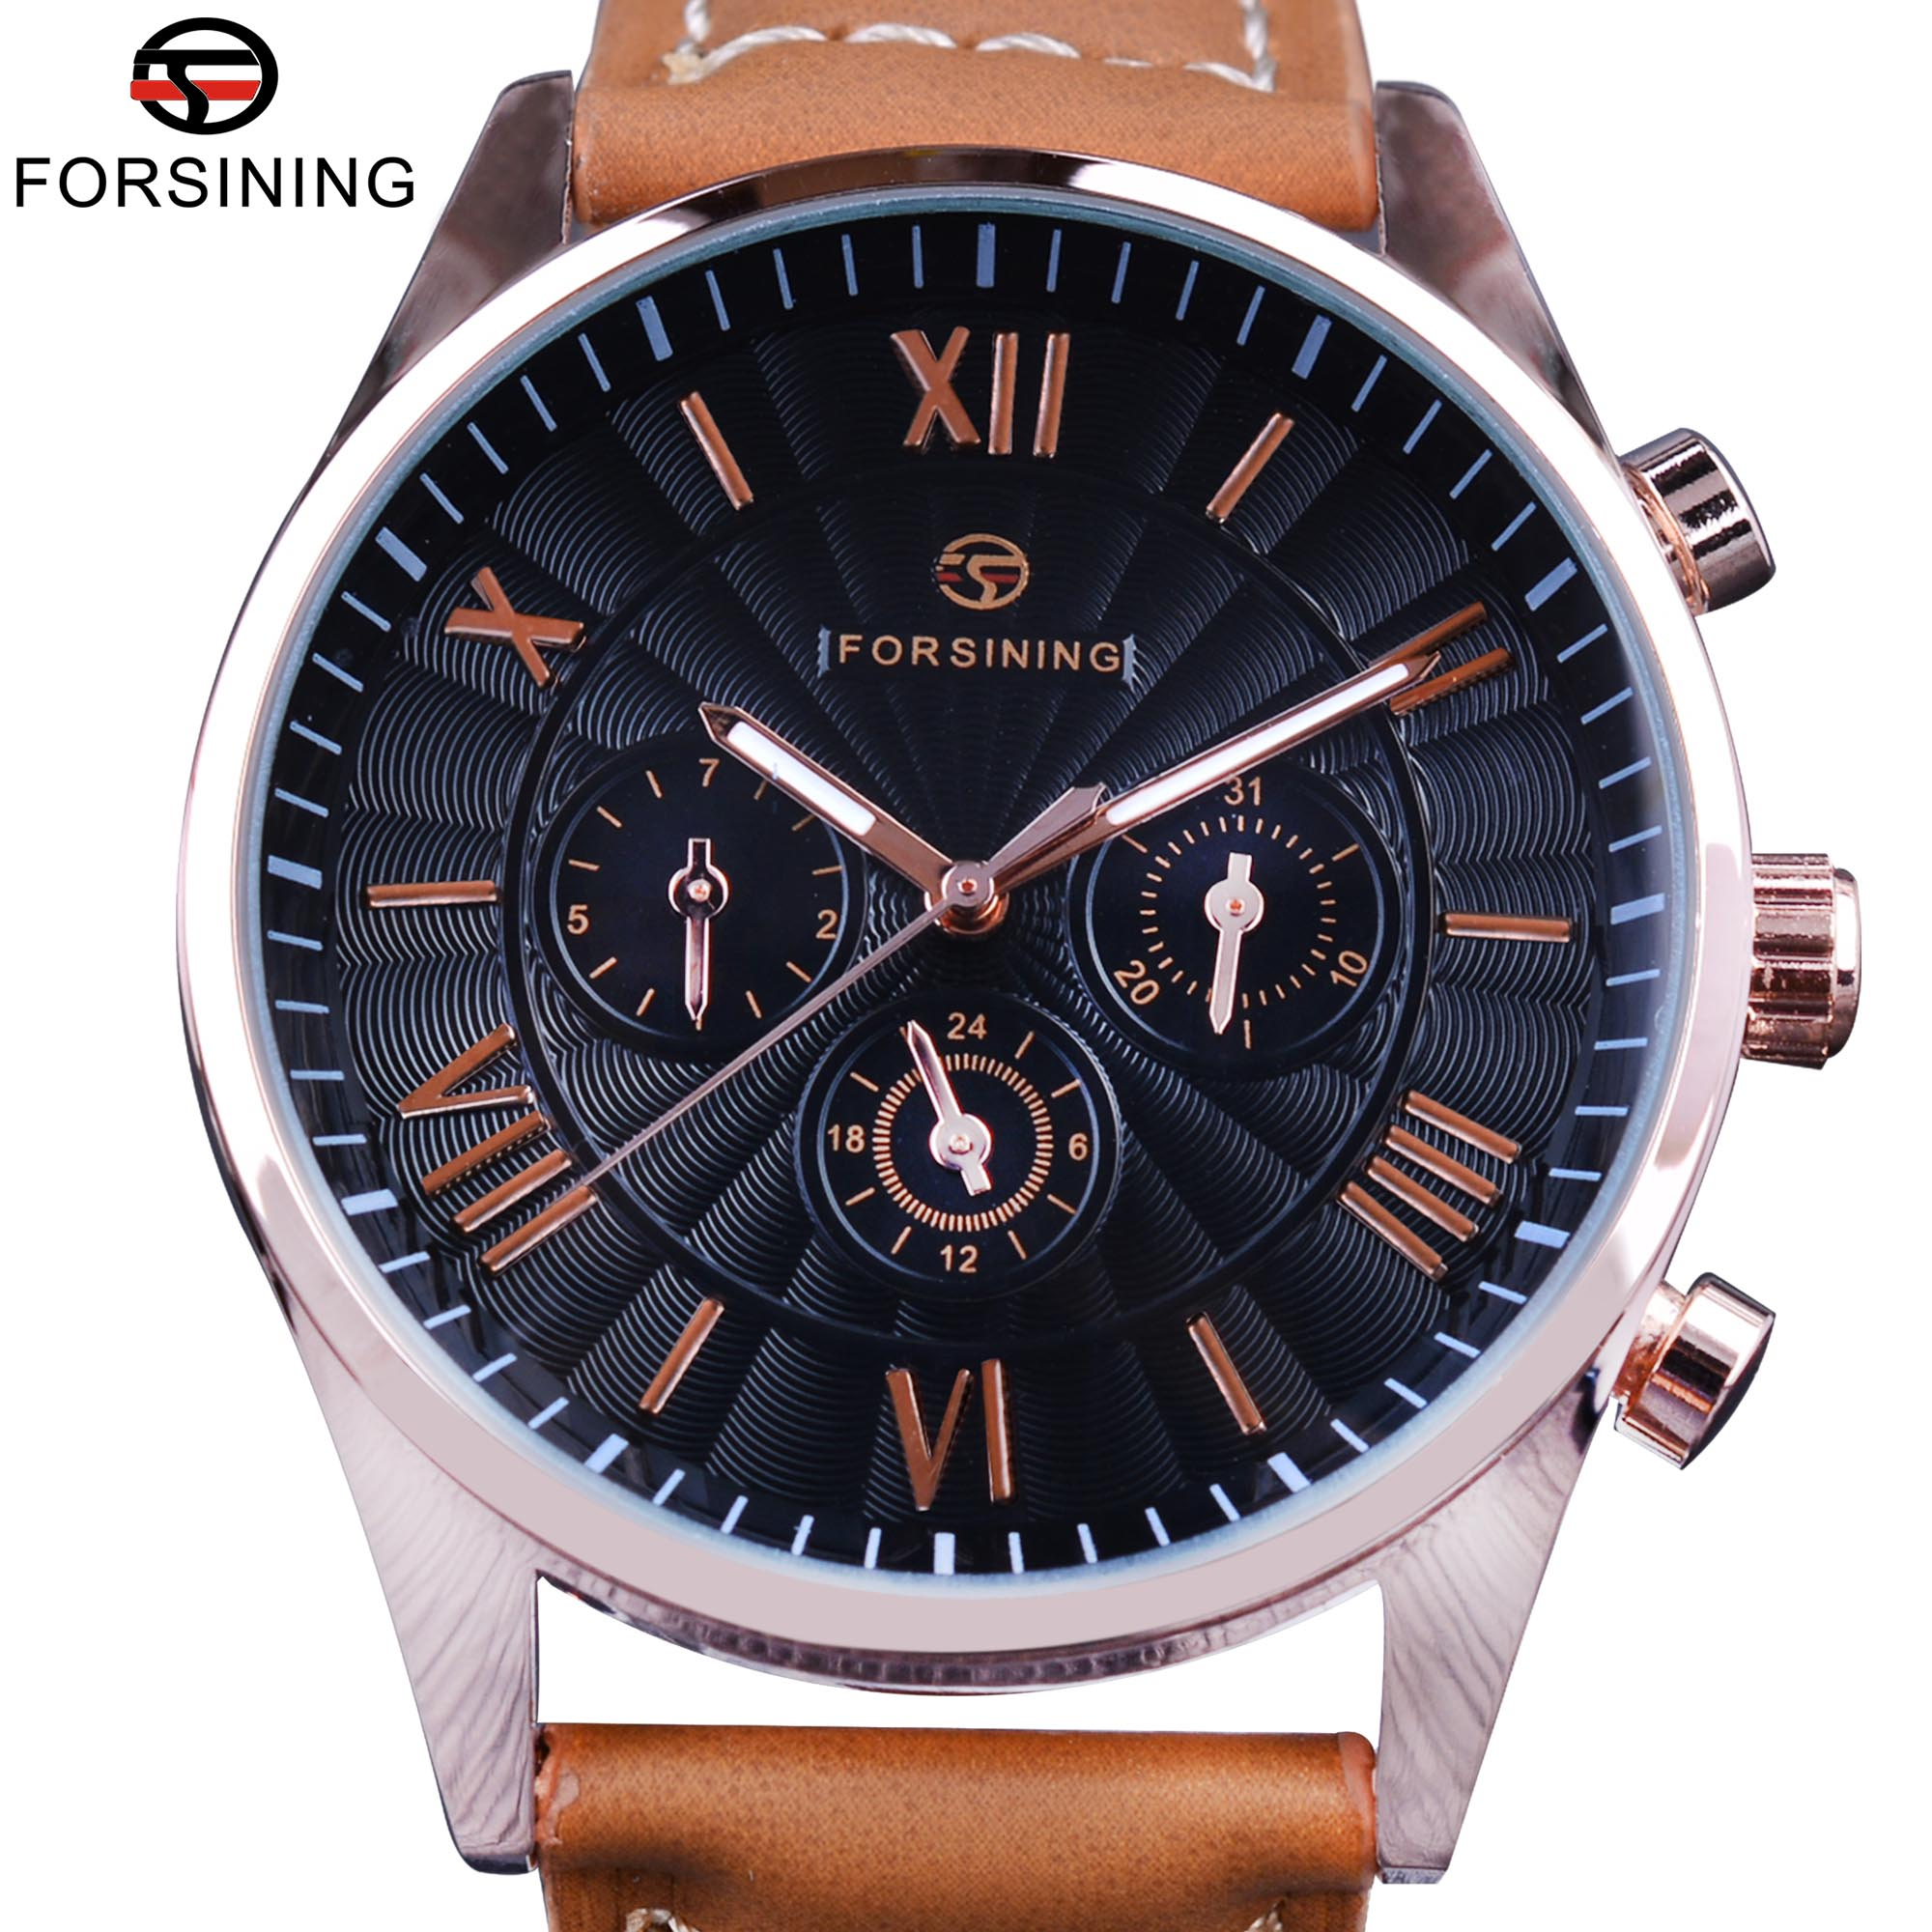 Forsining 2017 Fashion Swirl Dial Design 3 Dial 6 Hands Genuine Leather Mens Watches Top Brand Luxury Display Automatic Watch<br>